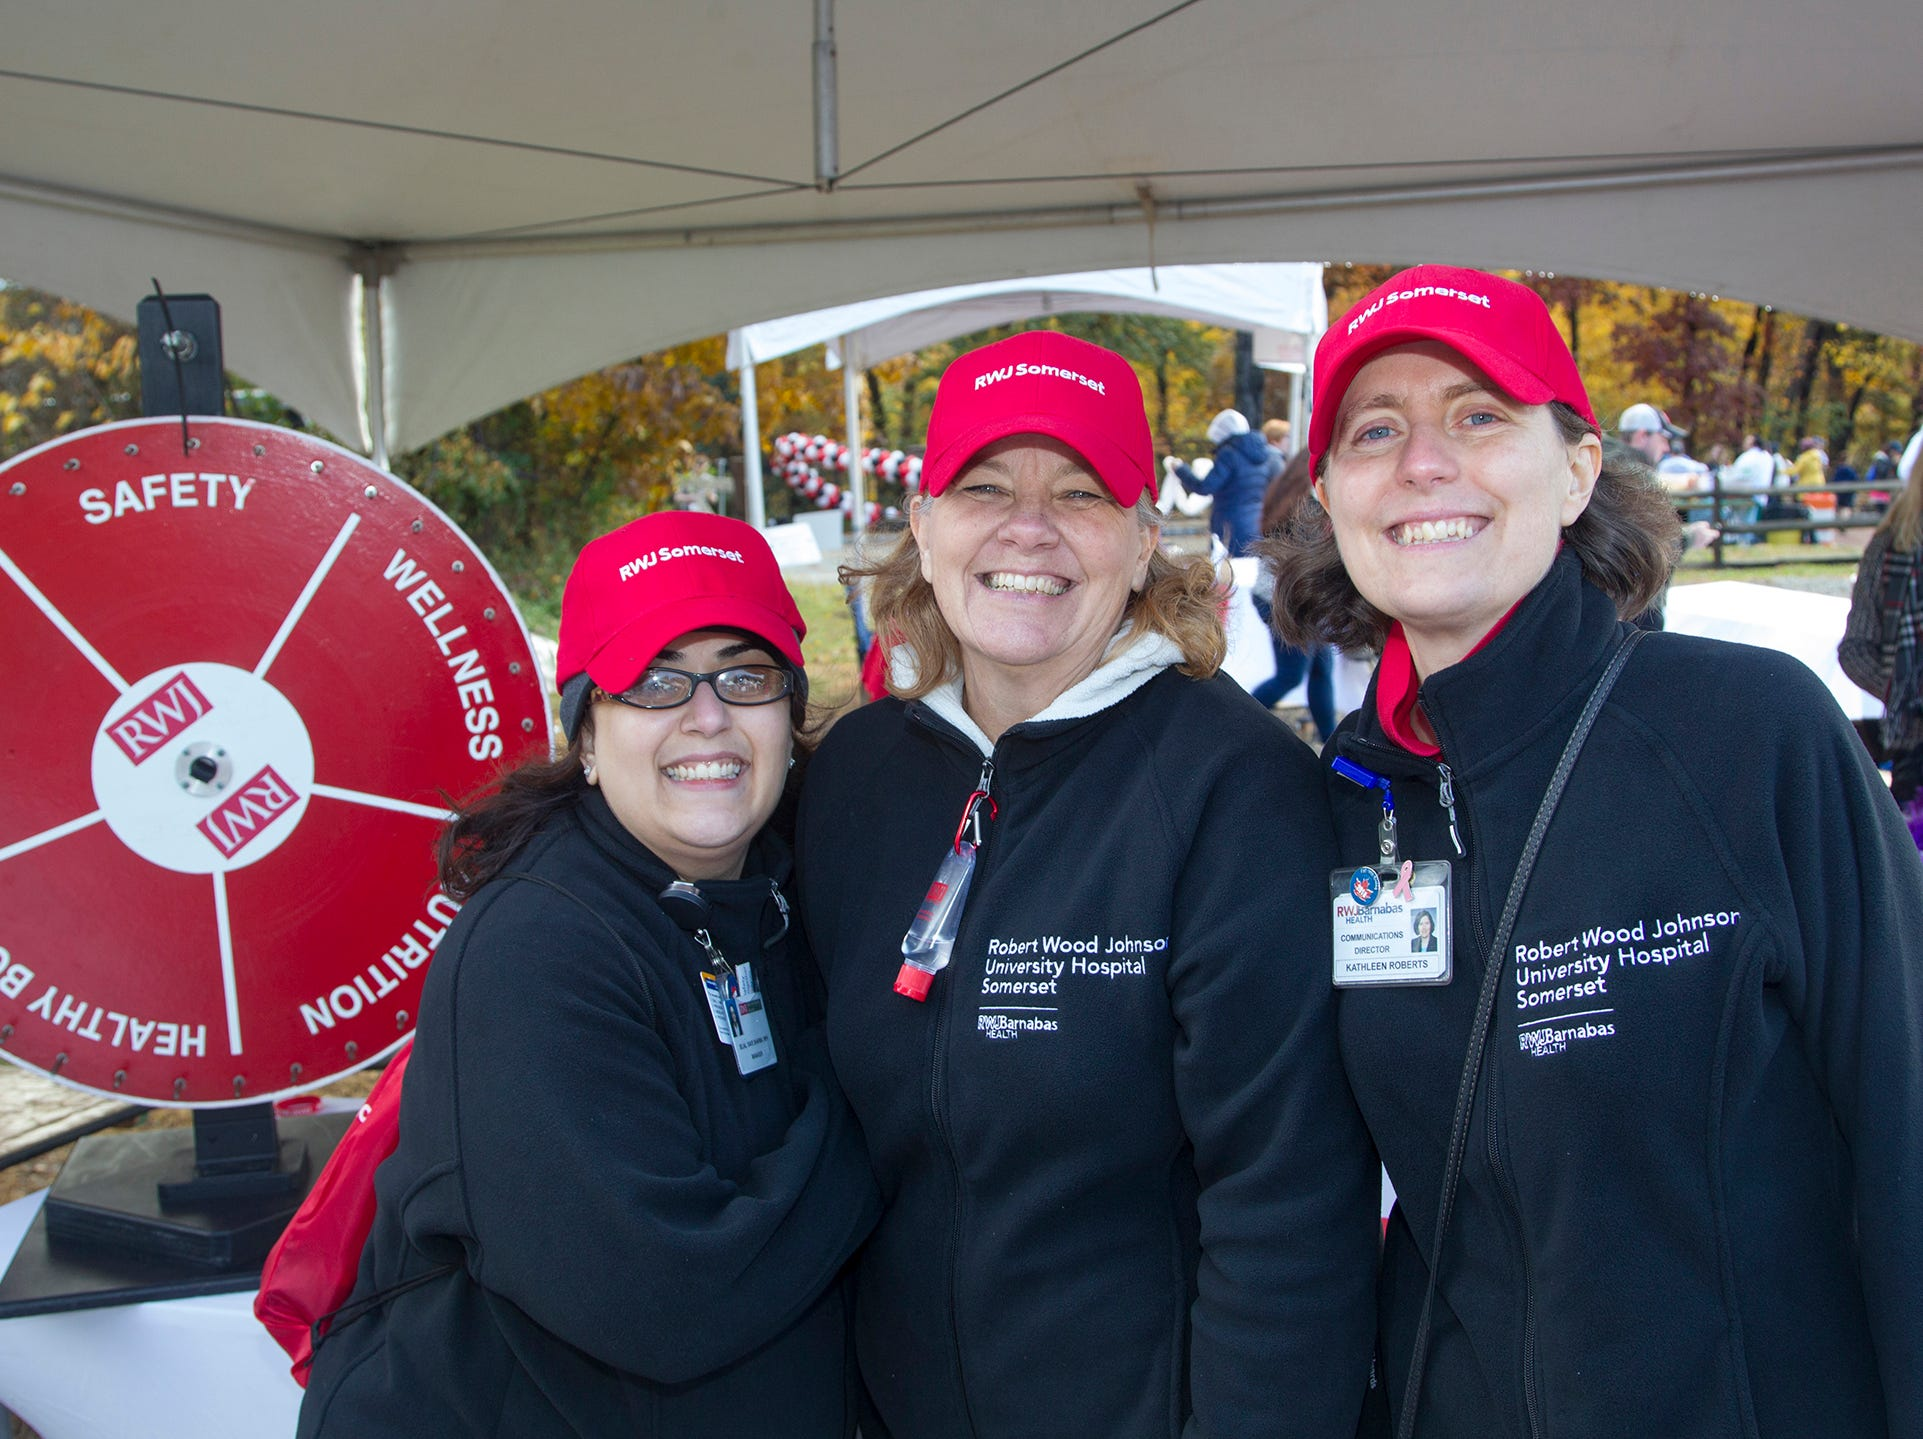 Sejal, Shari, Kathleen. RWJBarnabas Health Running with the Devils 5K Run and Family Fun Walk at South Mountain Recreation in West Orange. 10/03/2018